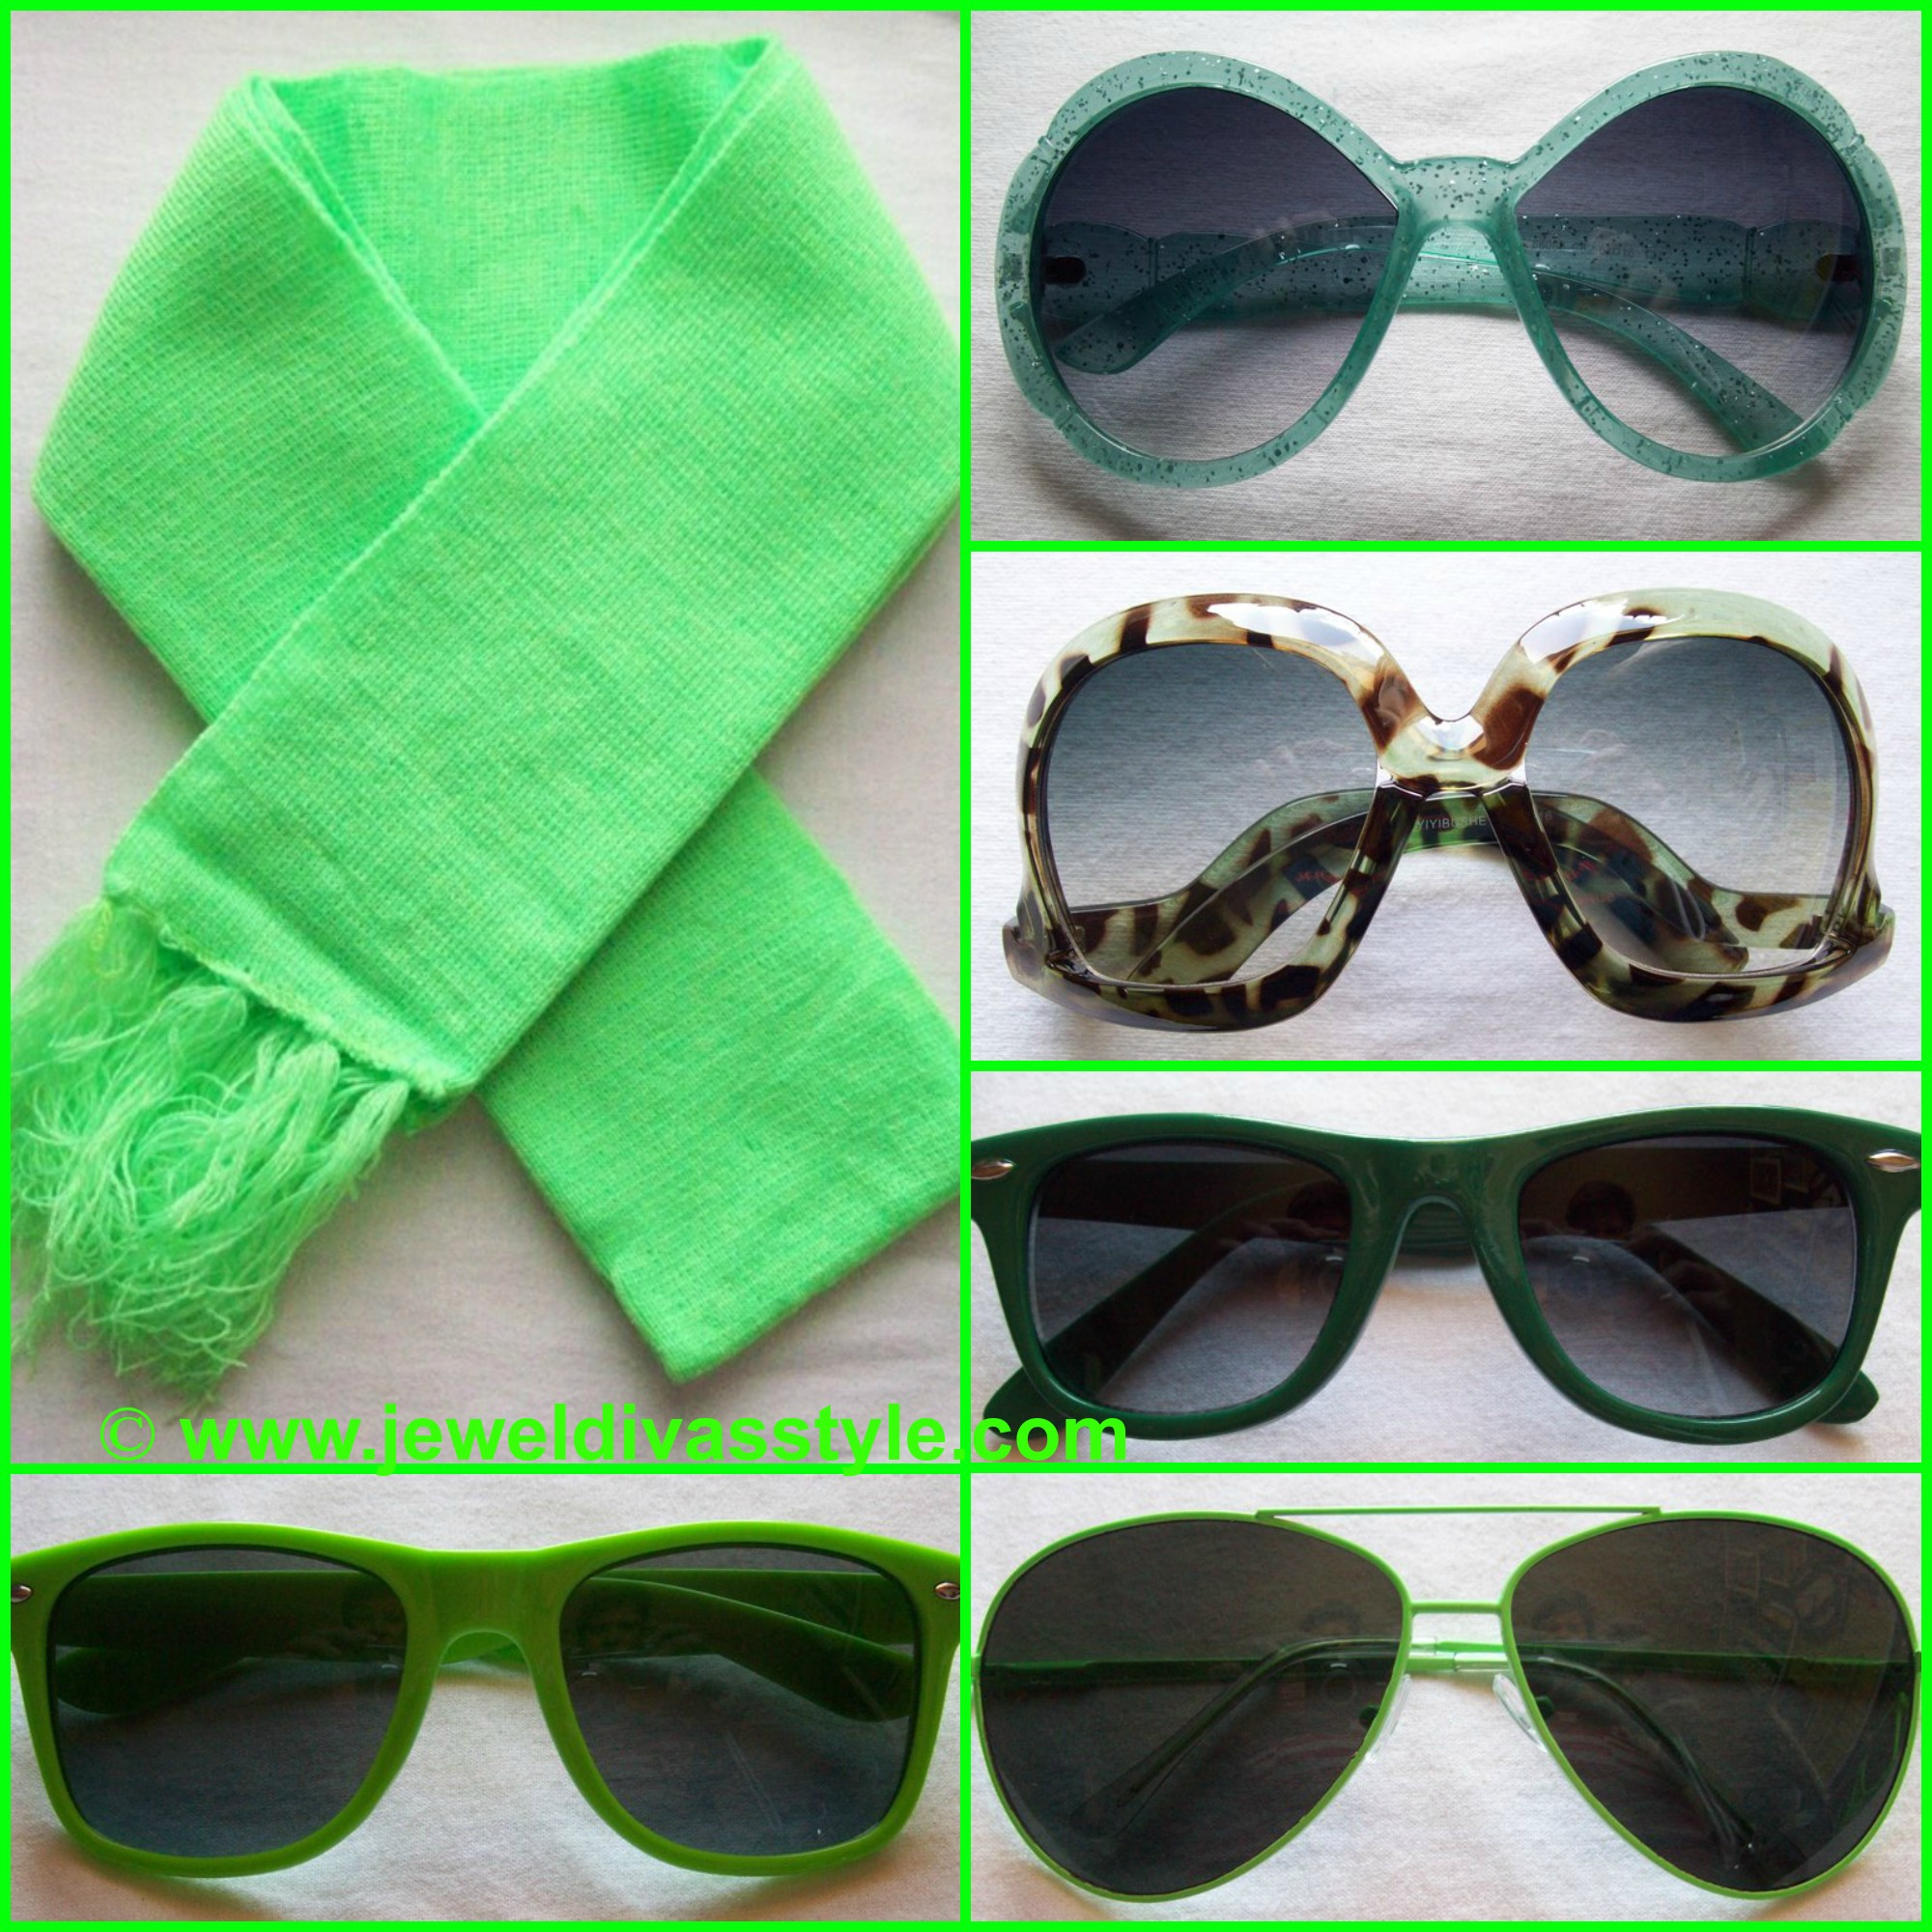 MY PERSONAL COLLECTION: Green Accessories